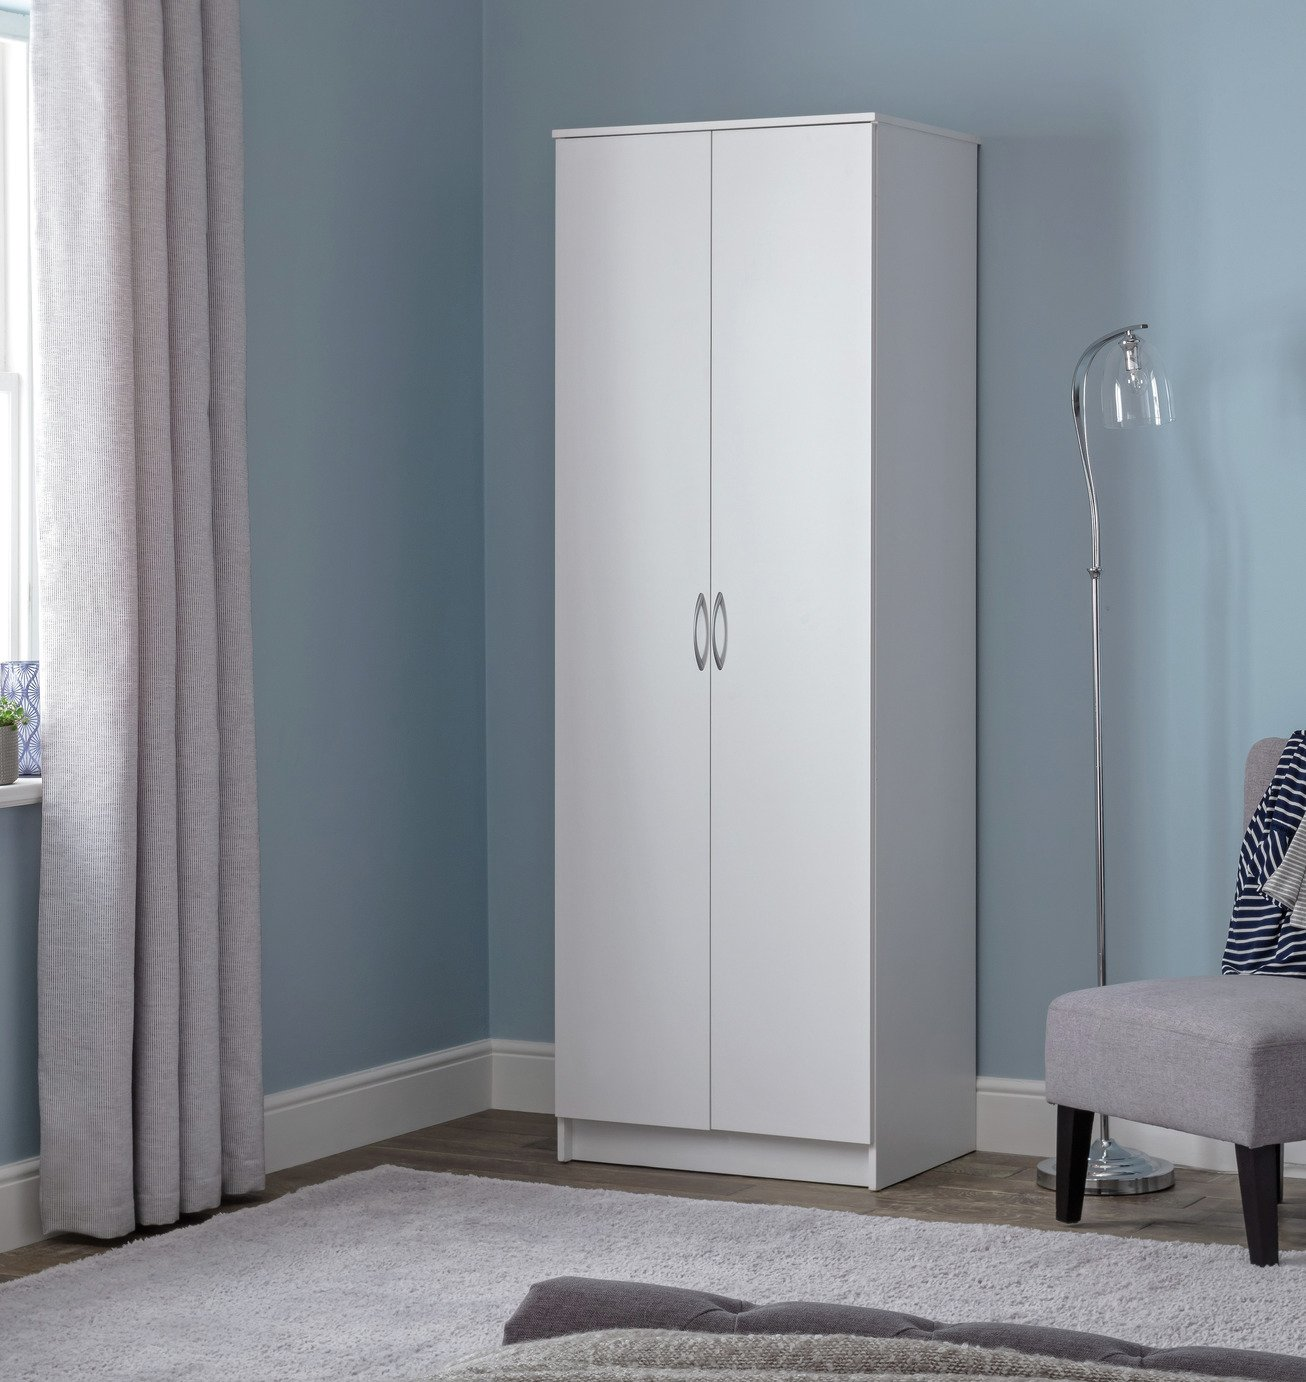 Argos Home Cheval 2 Door Wardrobe - White